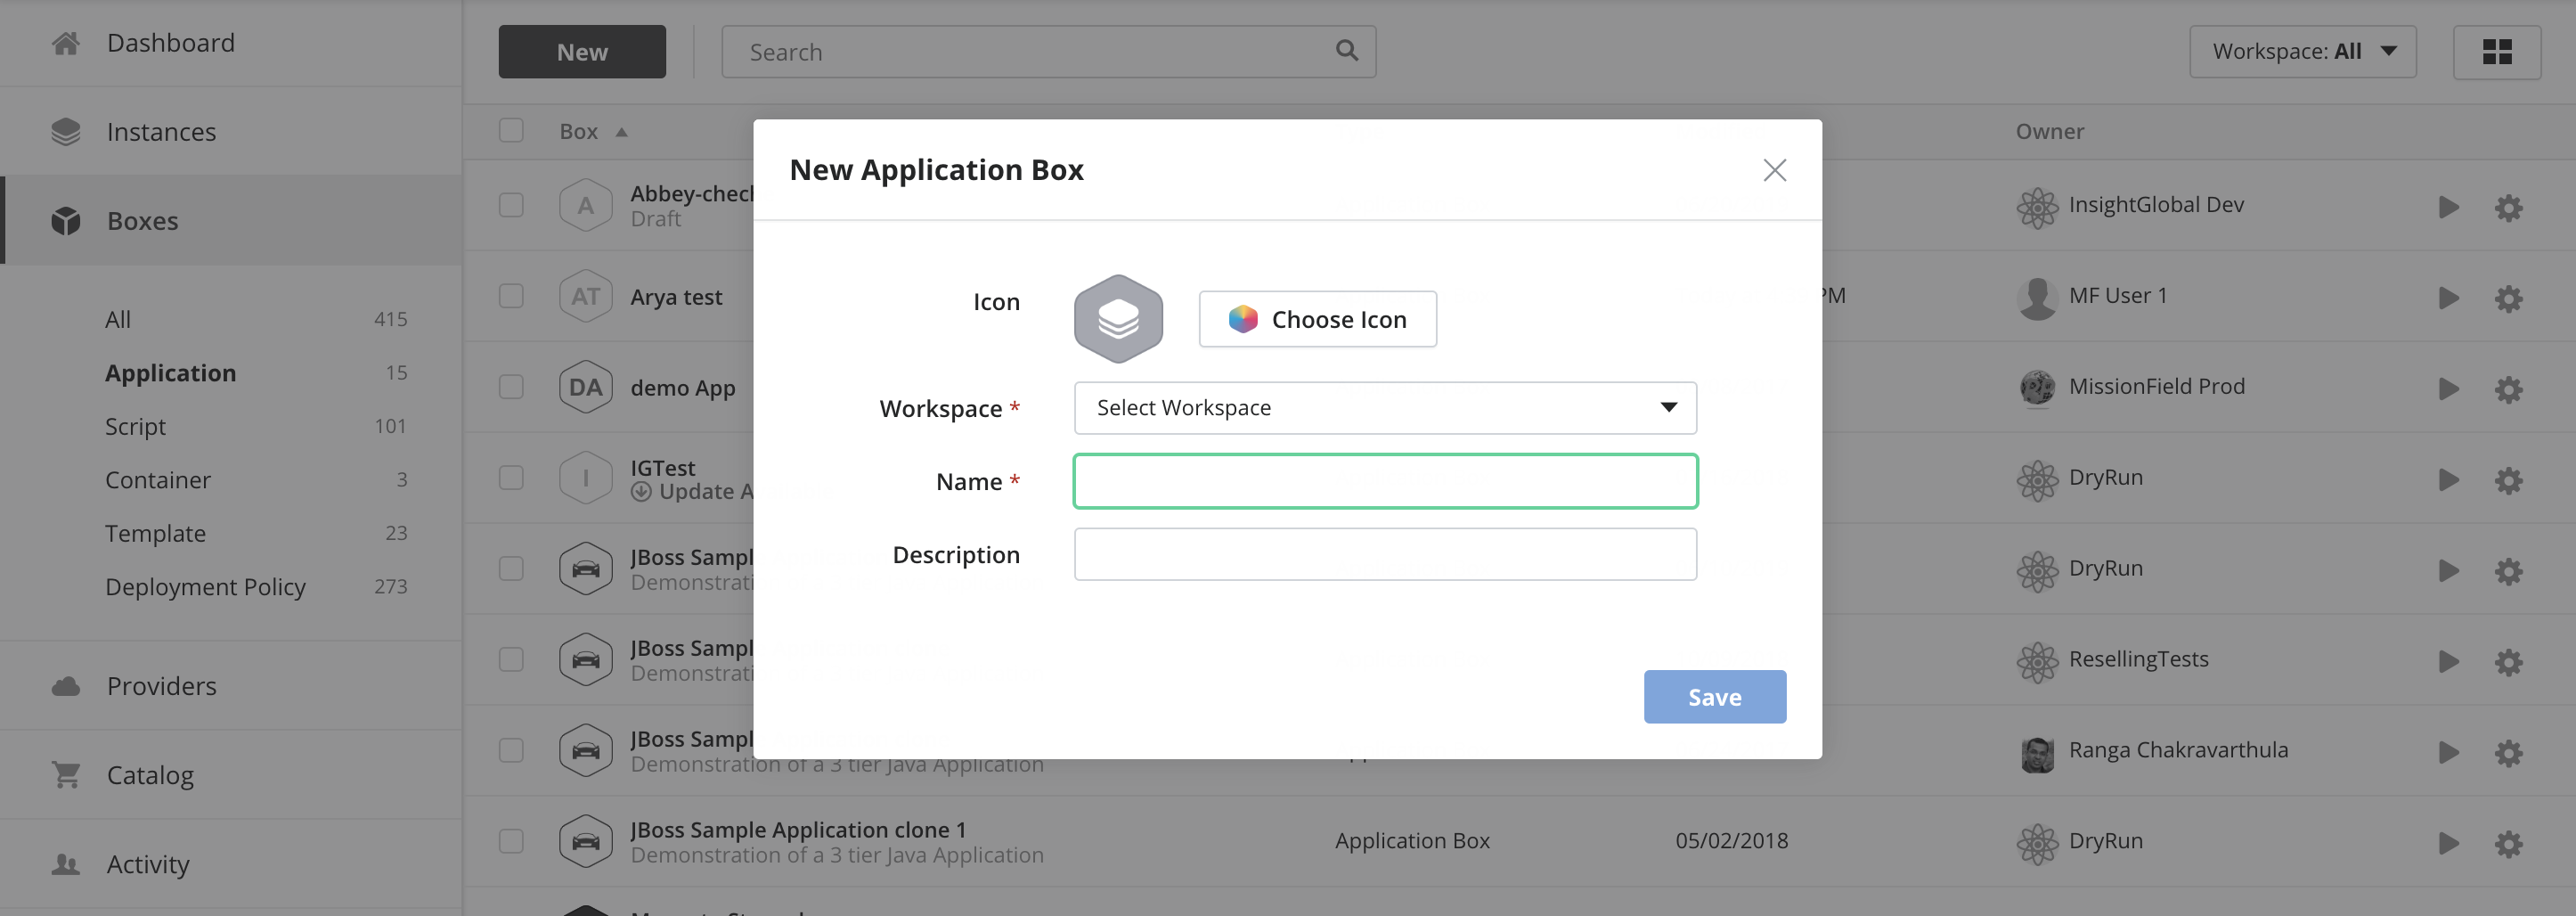 New Application Box data